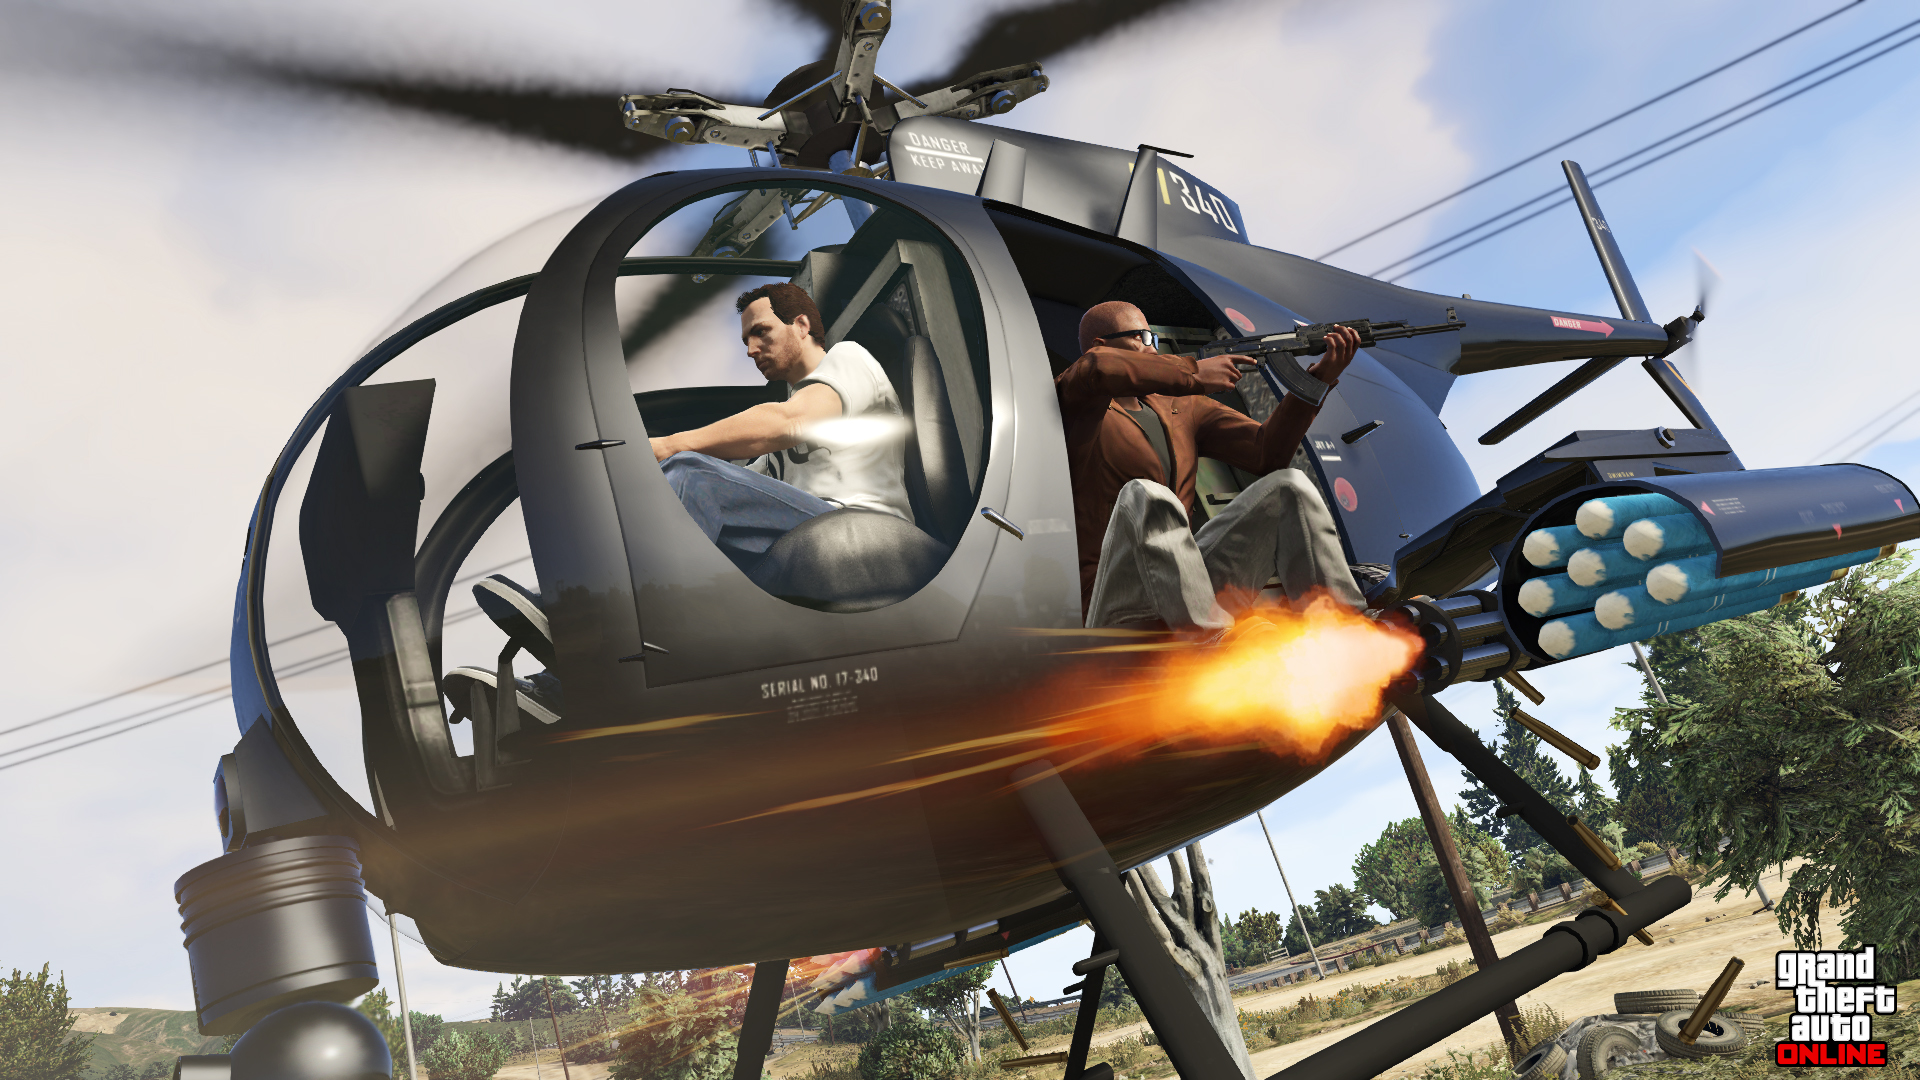 nightclub grand theft auto 5 v 6 online sales playstation charts profit